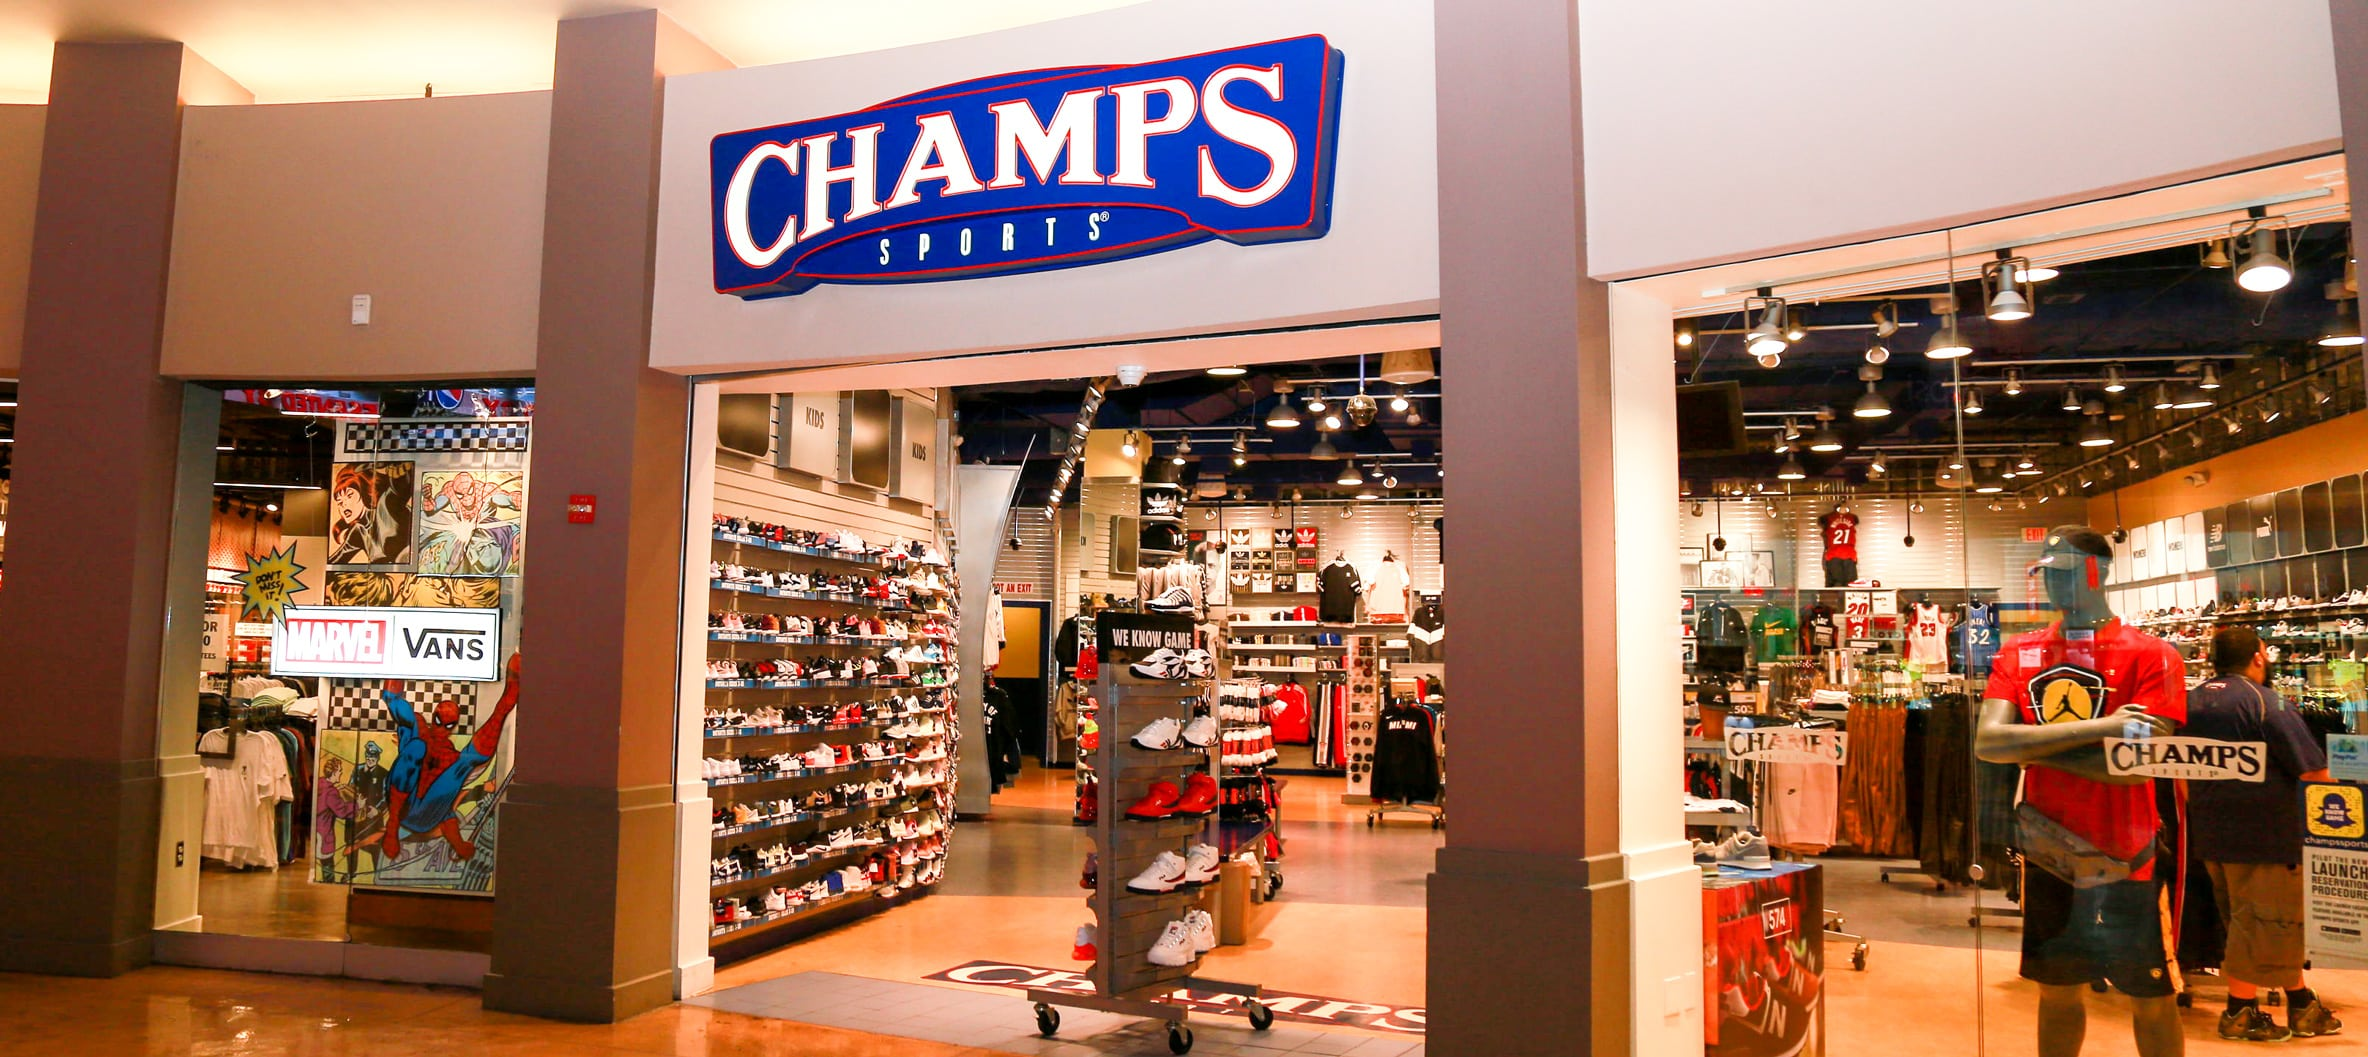 CHAMPS SPORTS: Get your head-to-toe hook up on the latest shoes and clothing from Jordan, Nike, adidas, and more. Free shipping for FLX members.